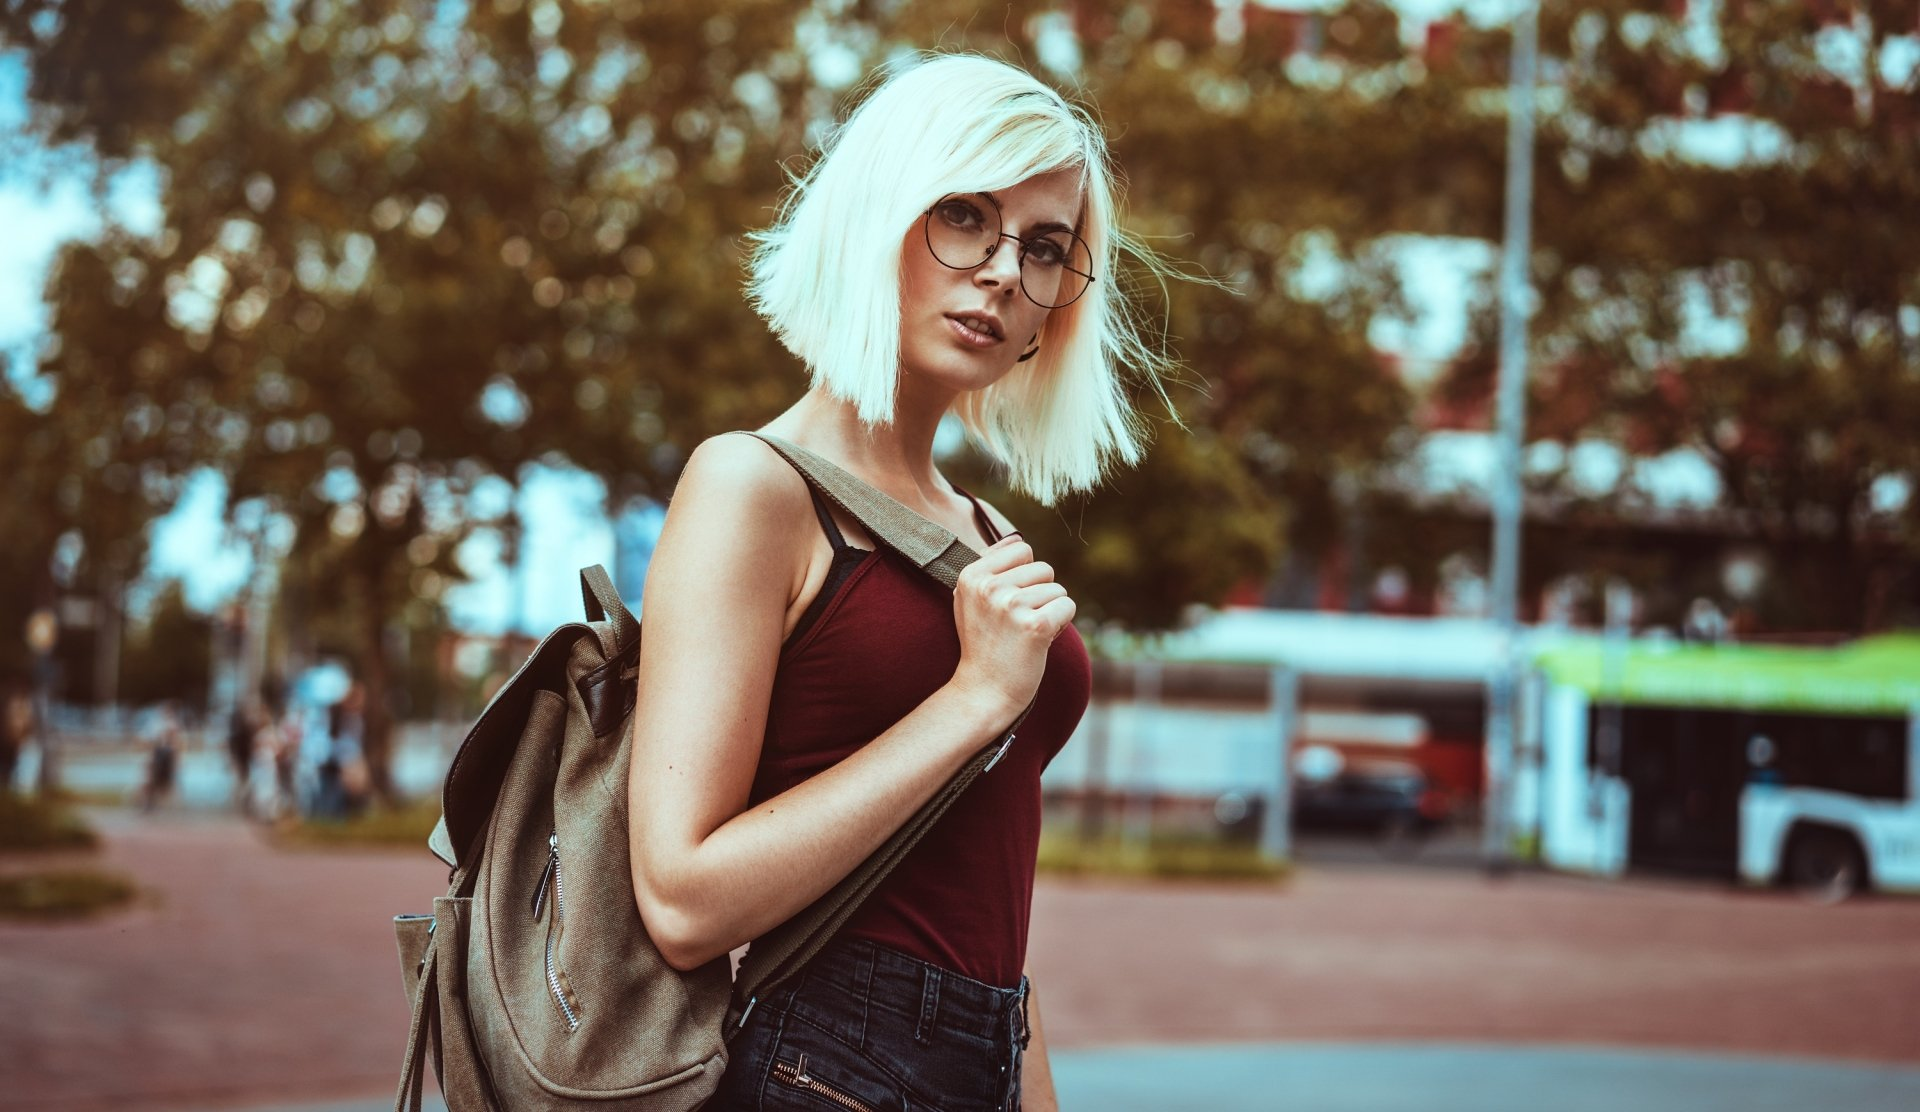 Women - Model  Woman Girl Blonde Short Hair Glasses Depth Of Field Wallpaper